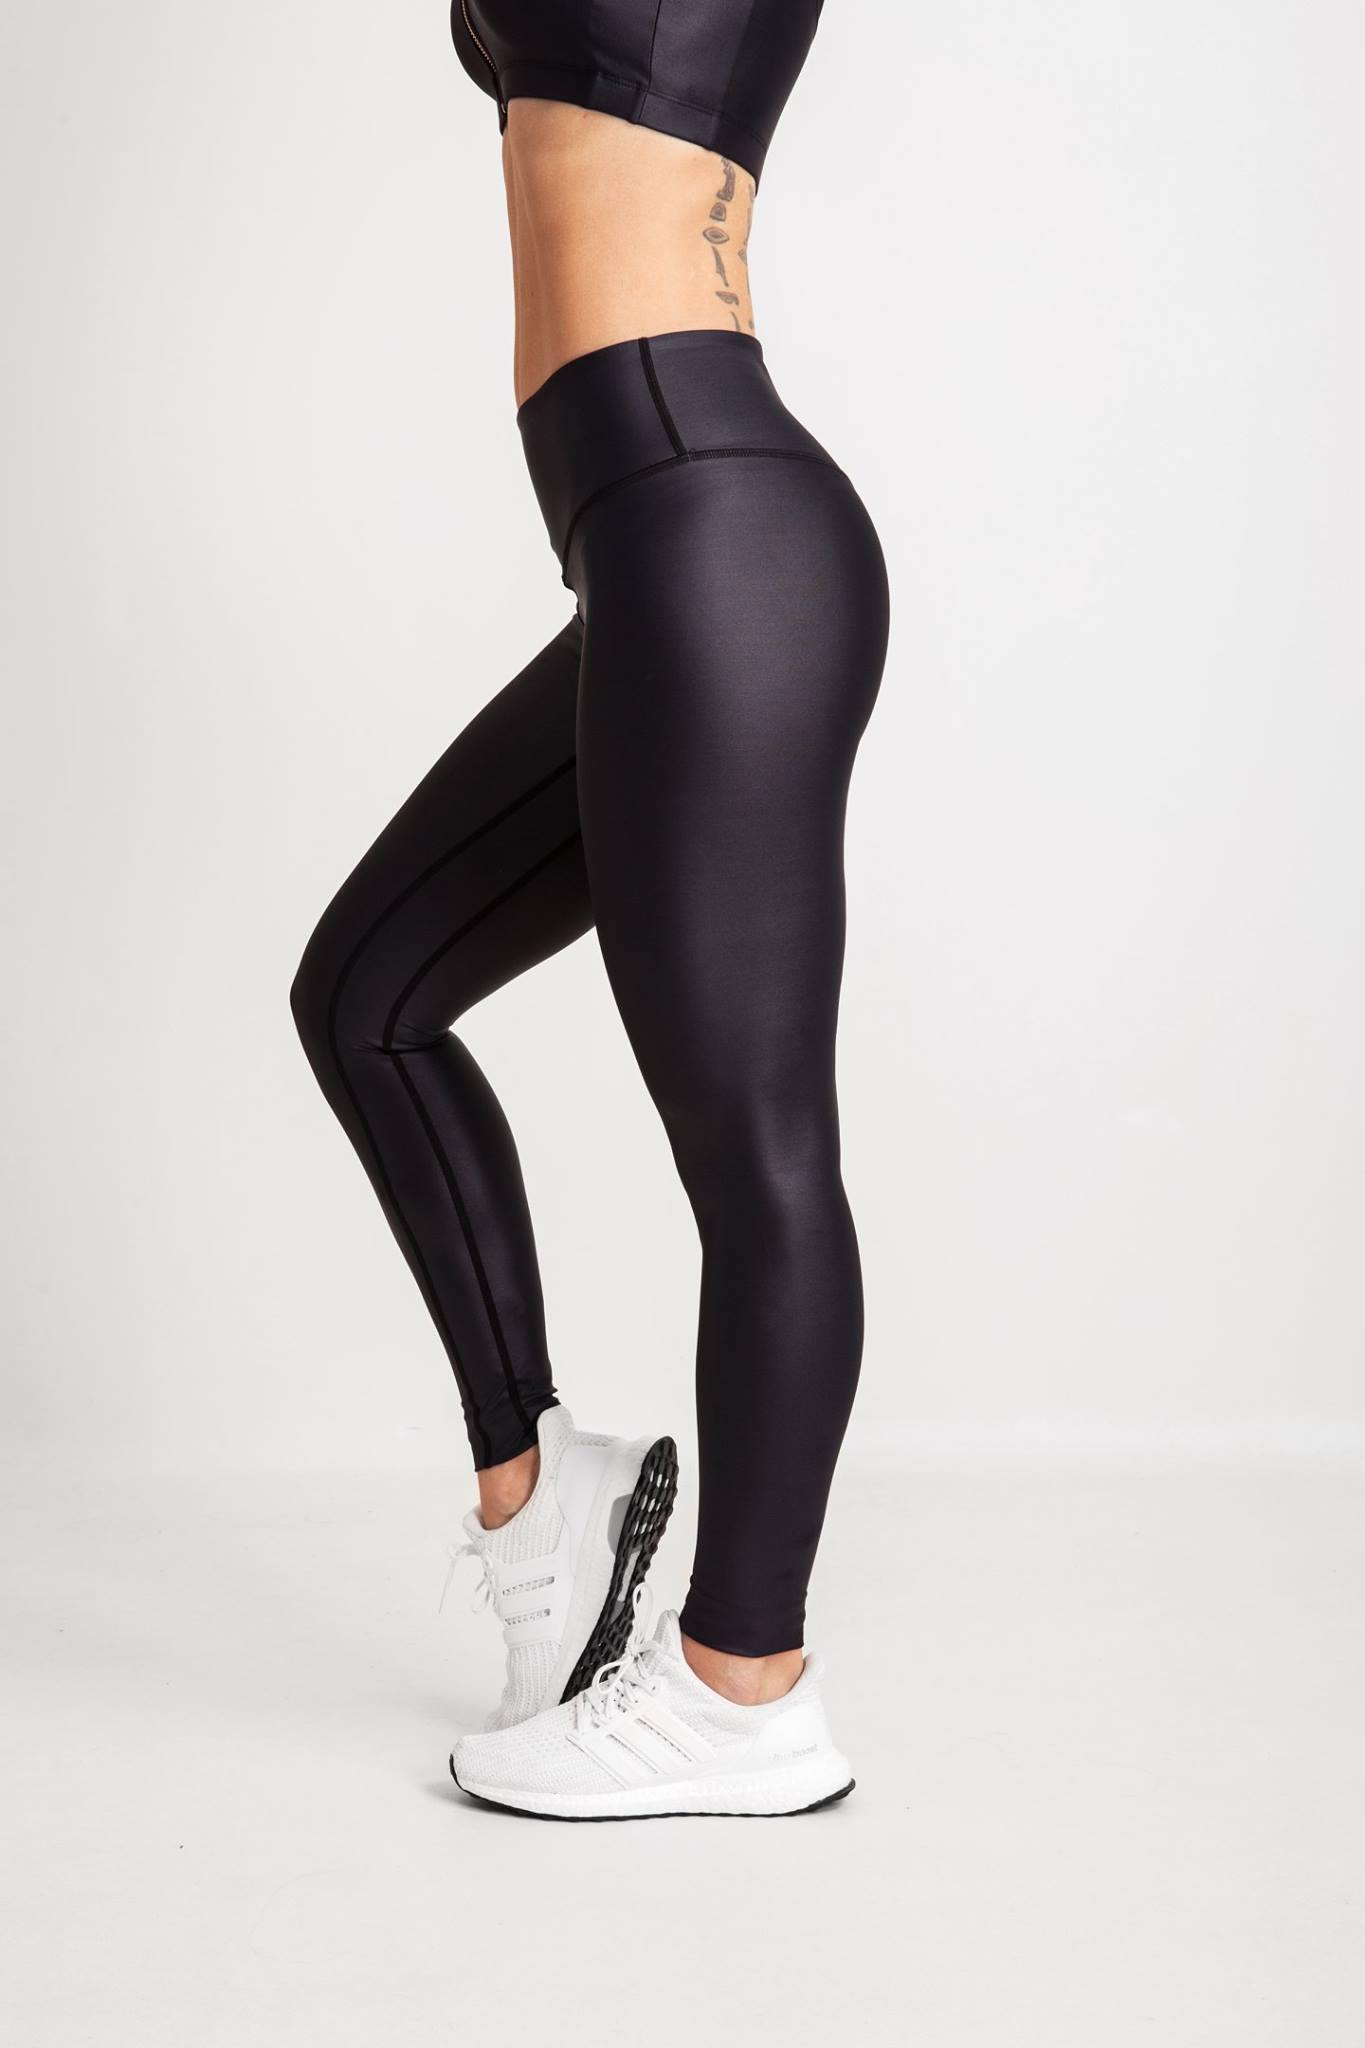 Glow Legging & Top